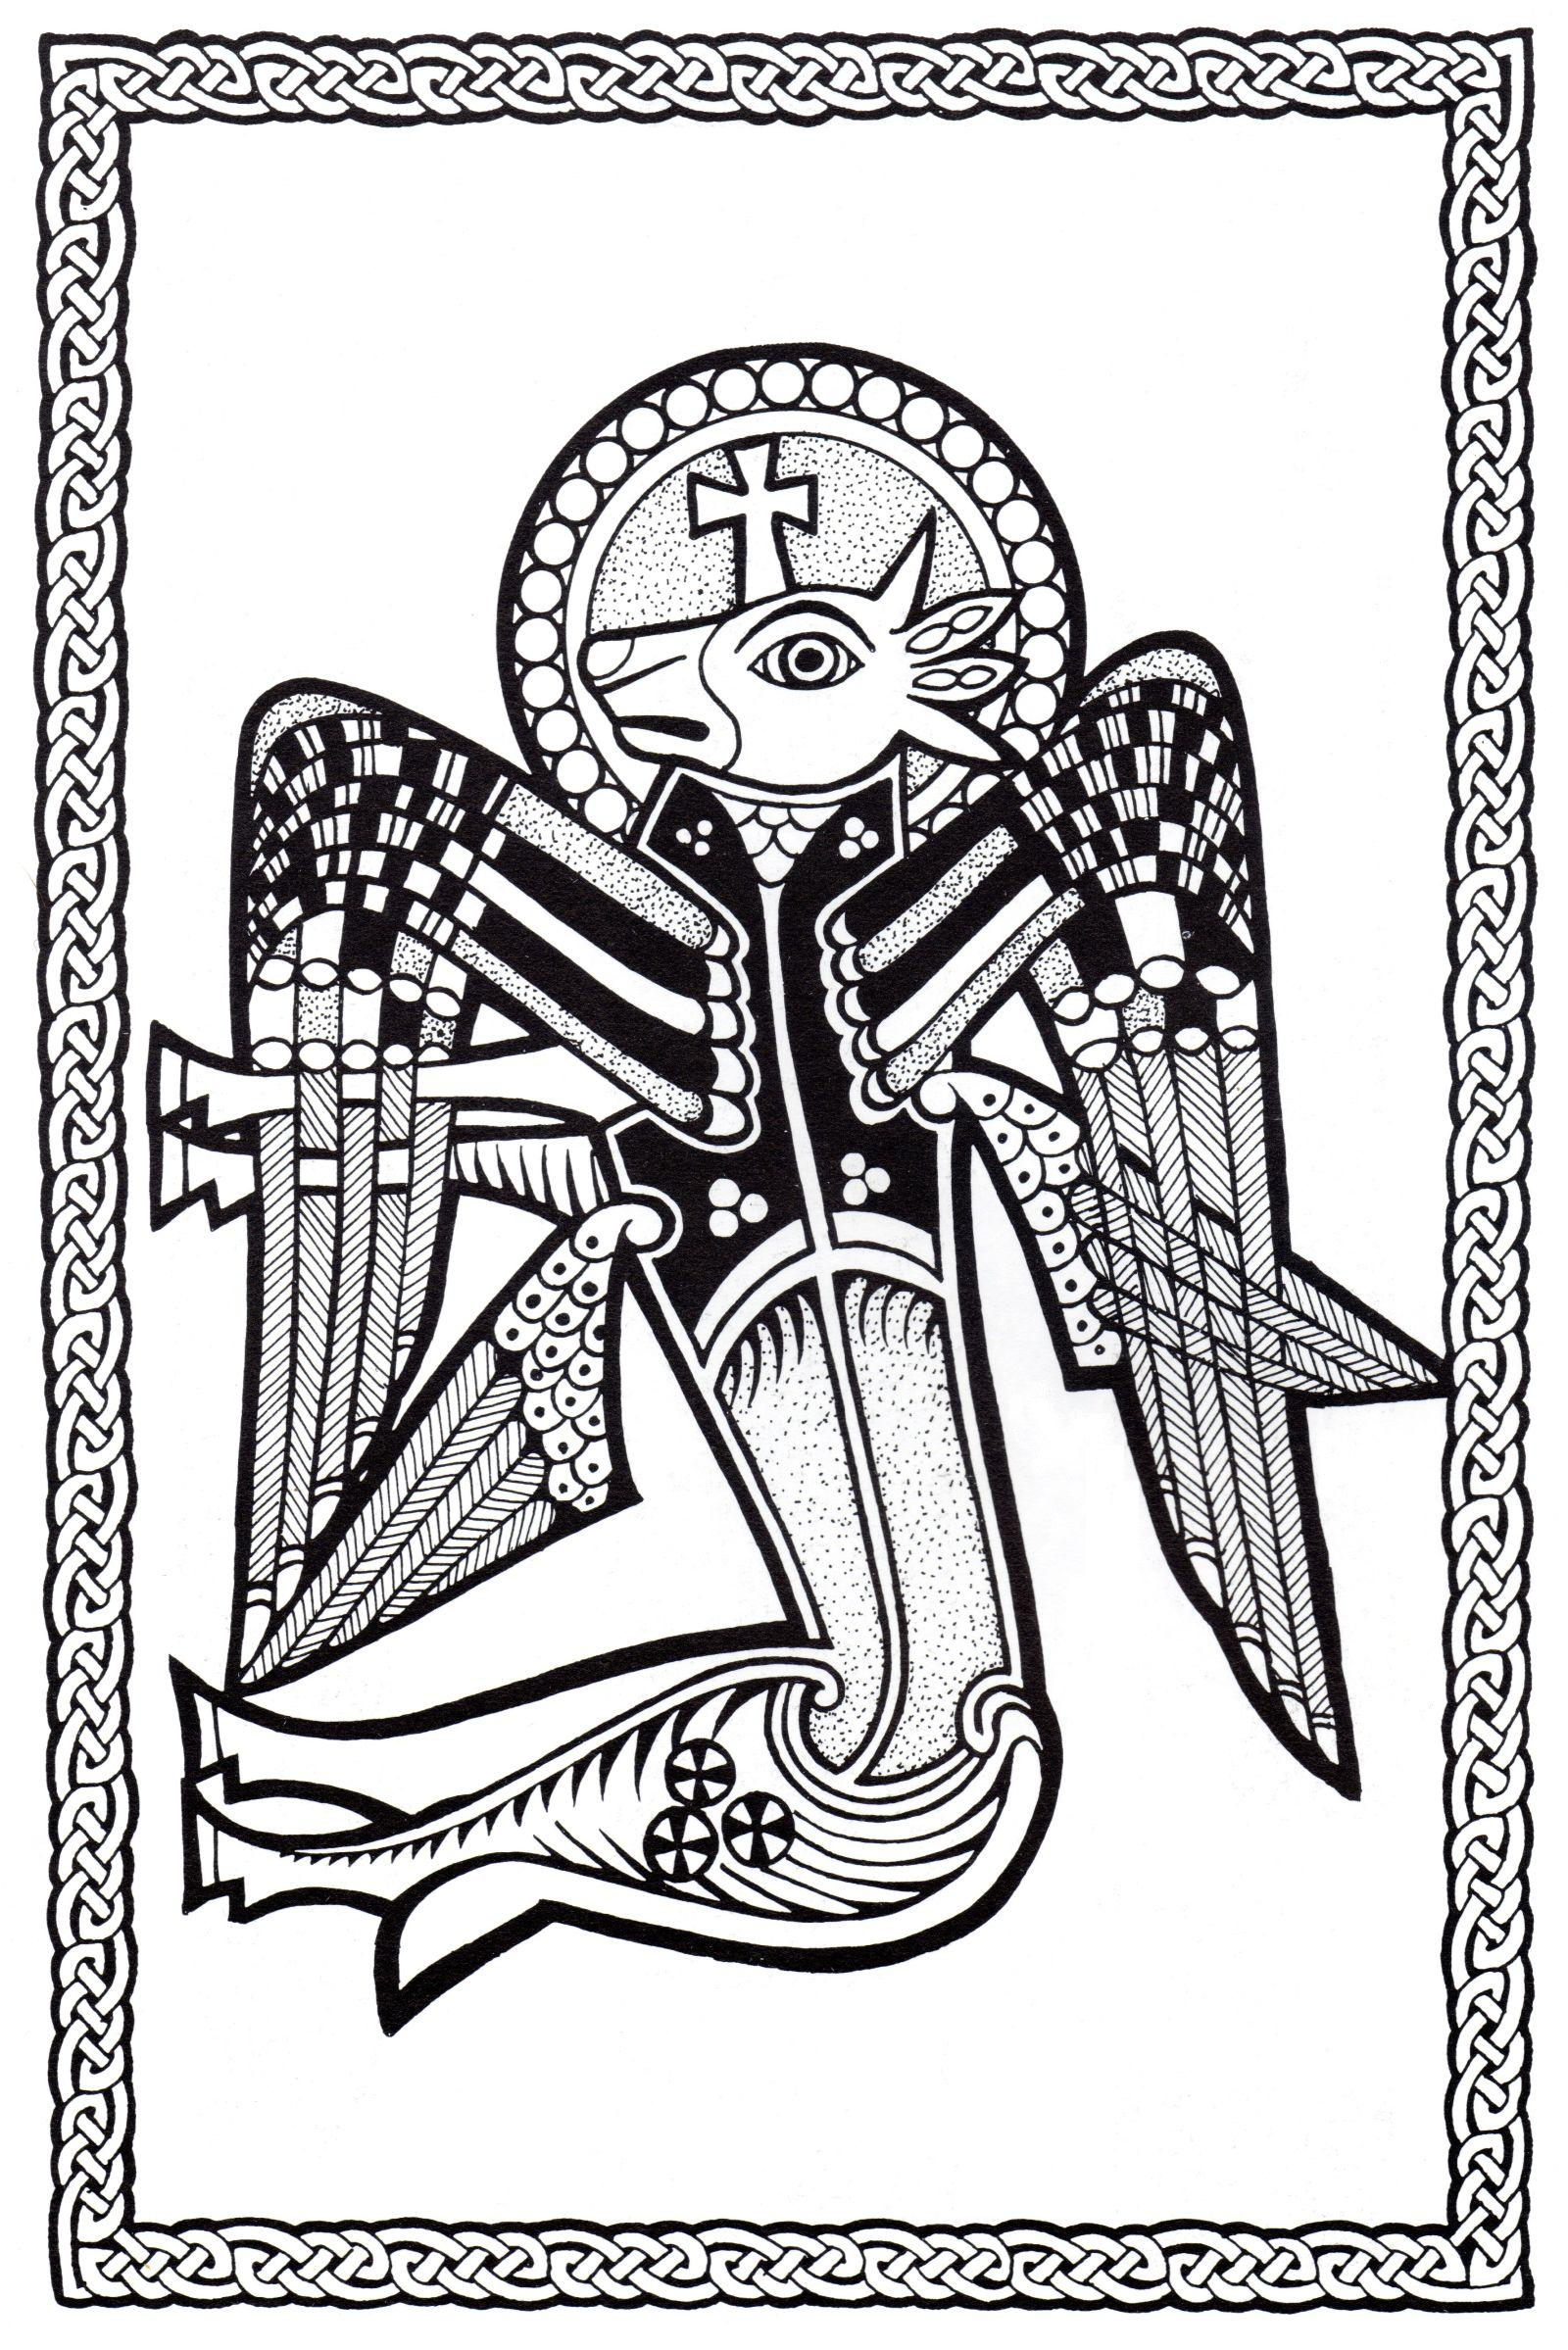 Magnificent Celtic art drawing, with animal with wings